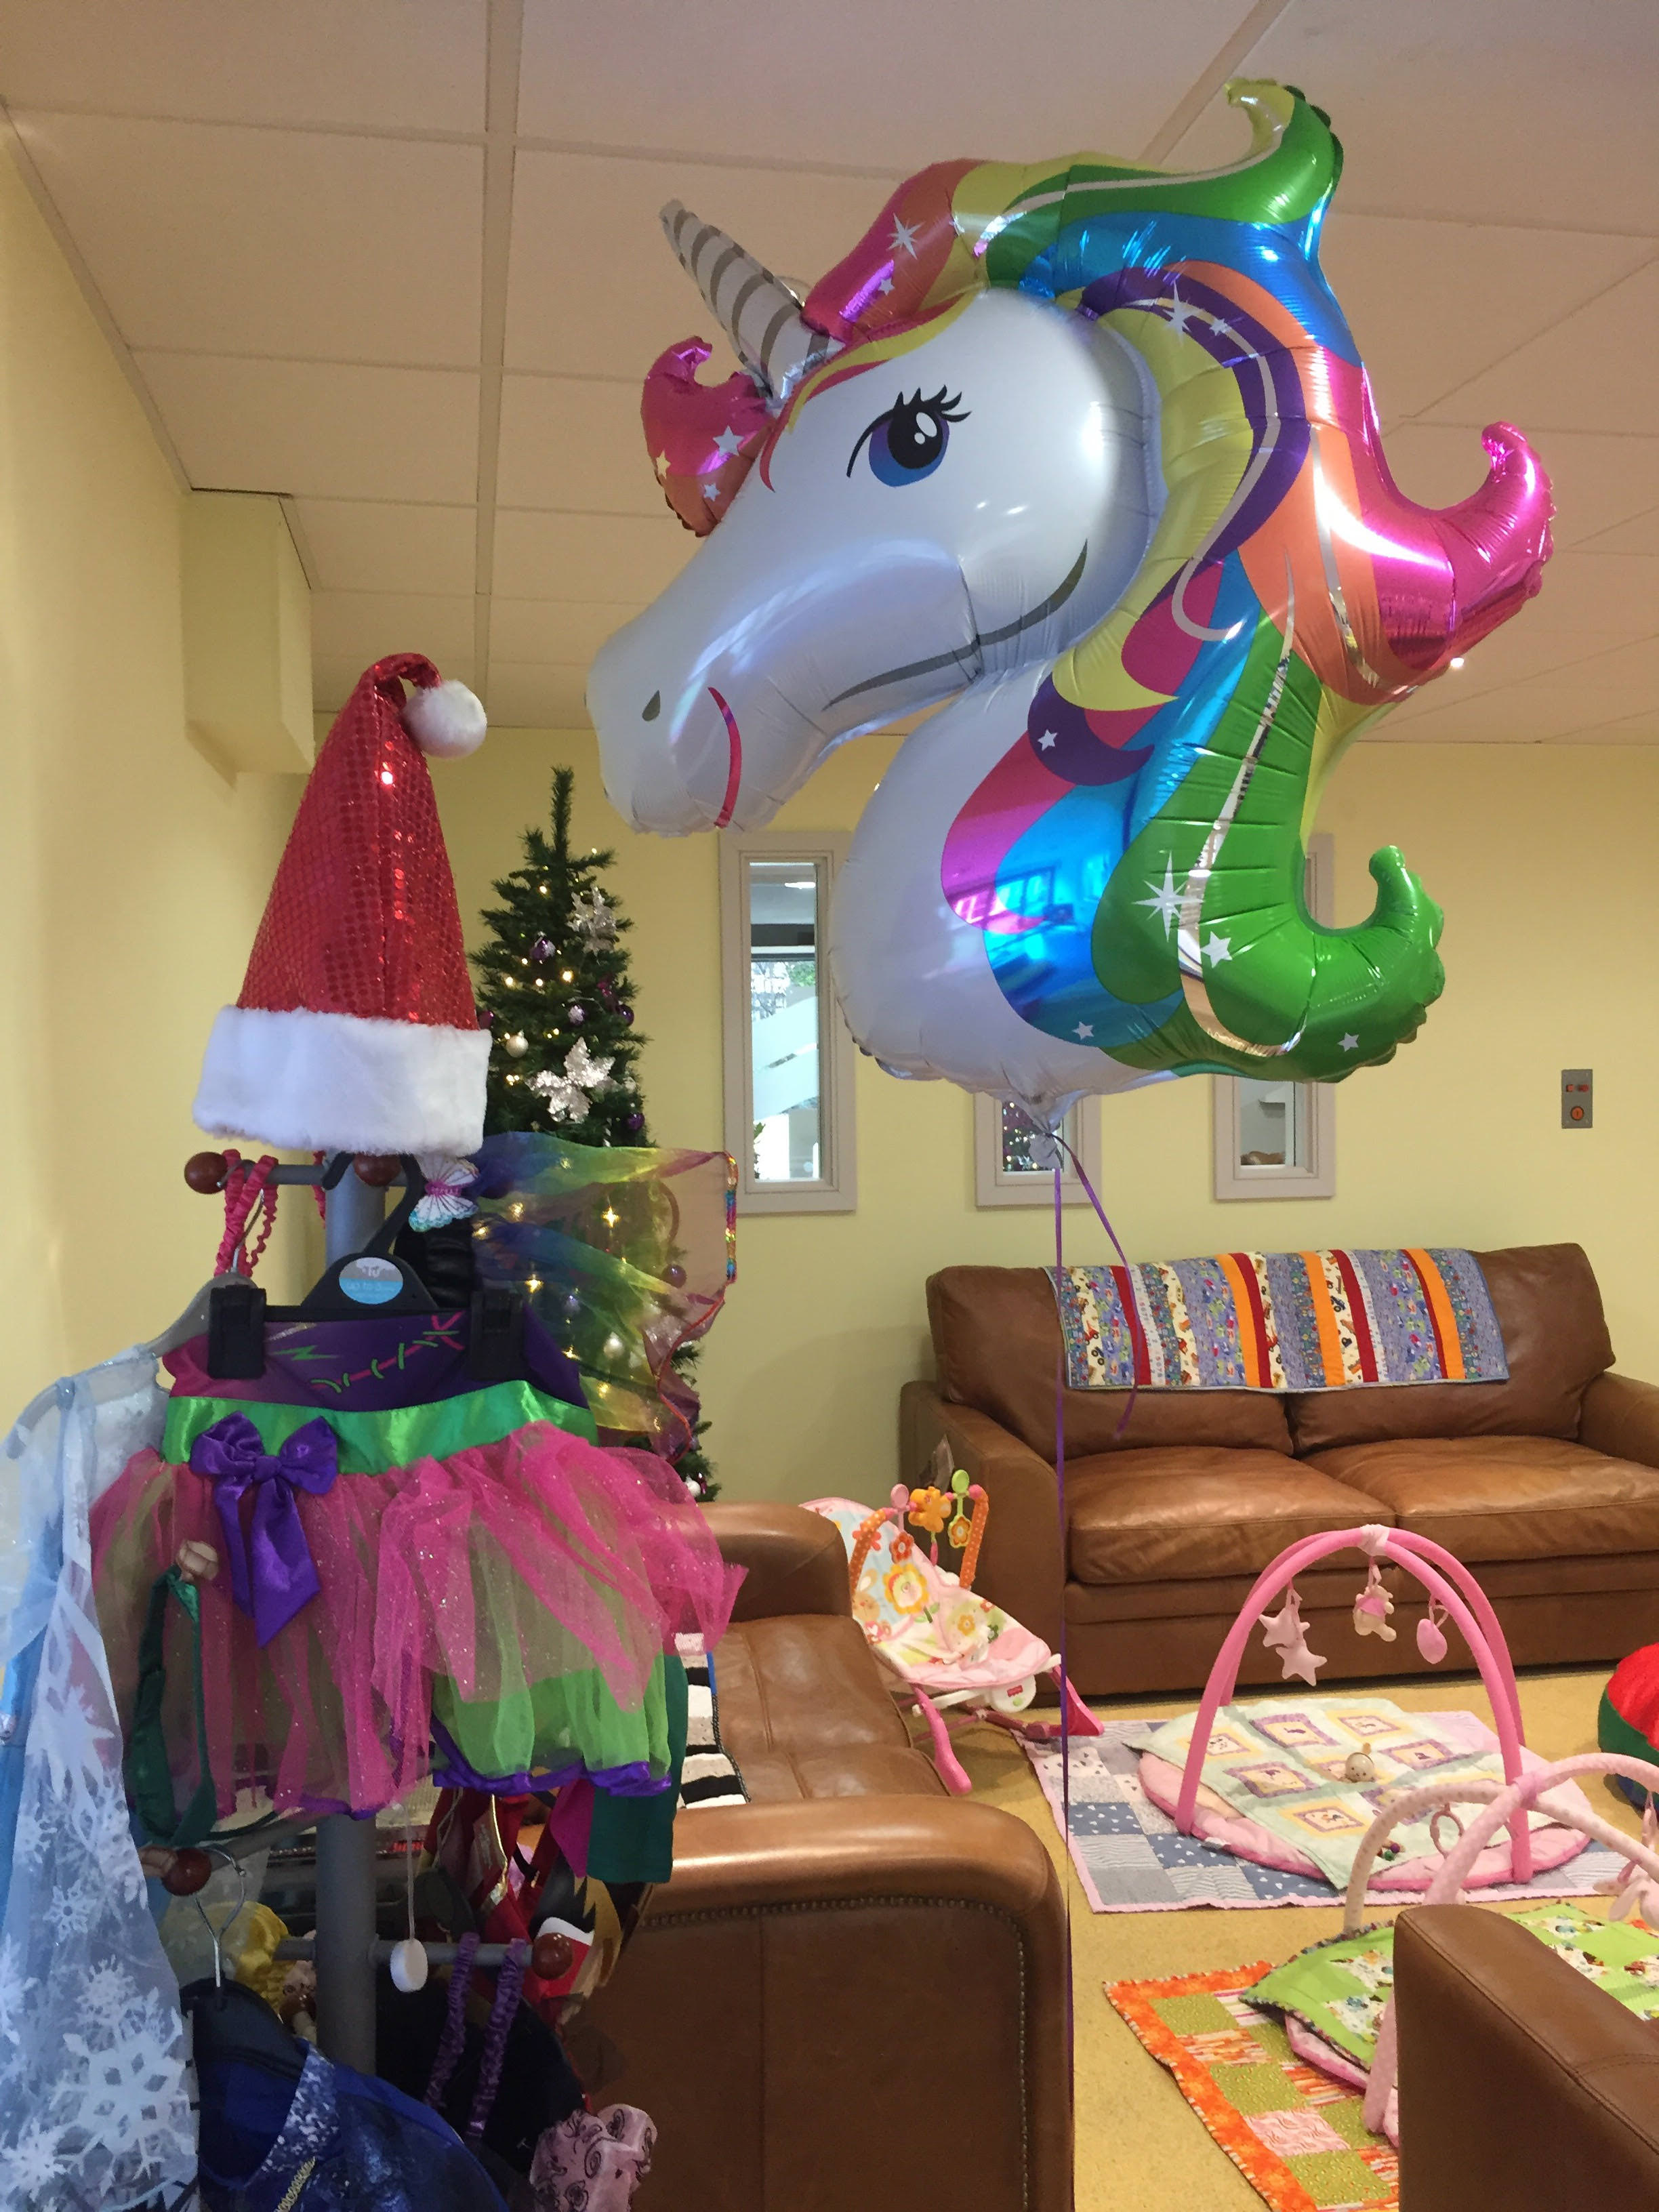 Forget Me Not Children's Hospice in Bury decorated ahead of an important charity PR day when they had a royal visitor